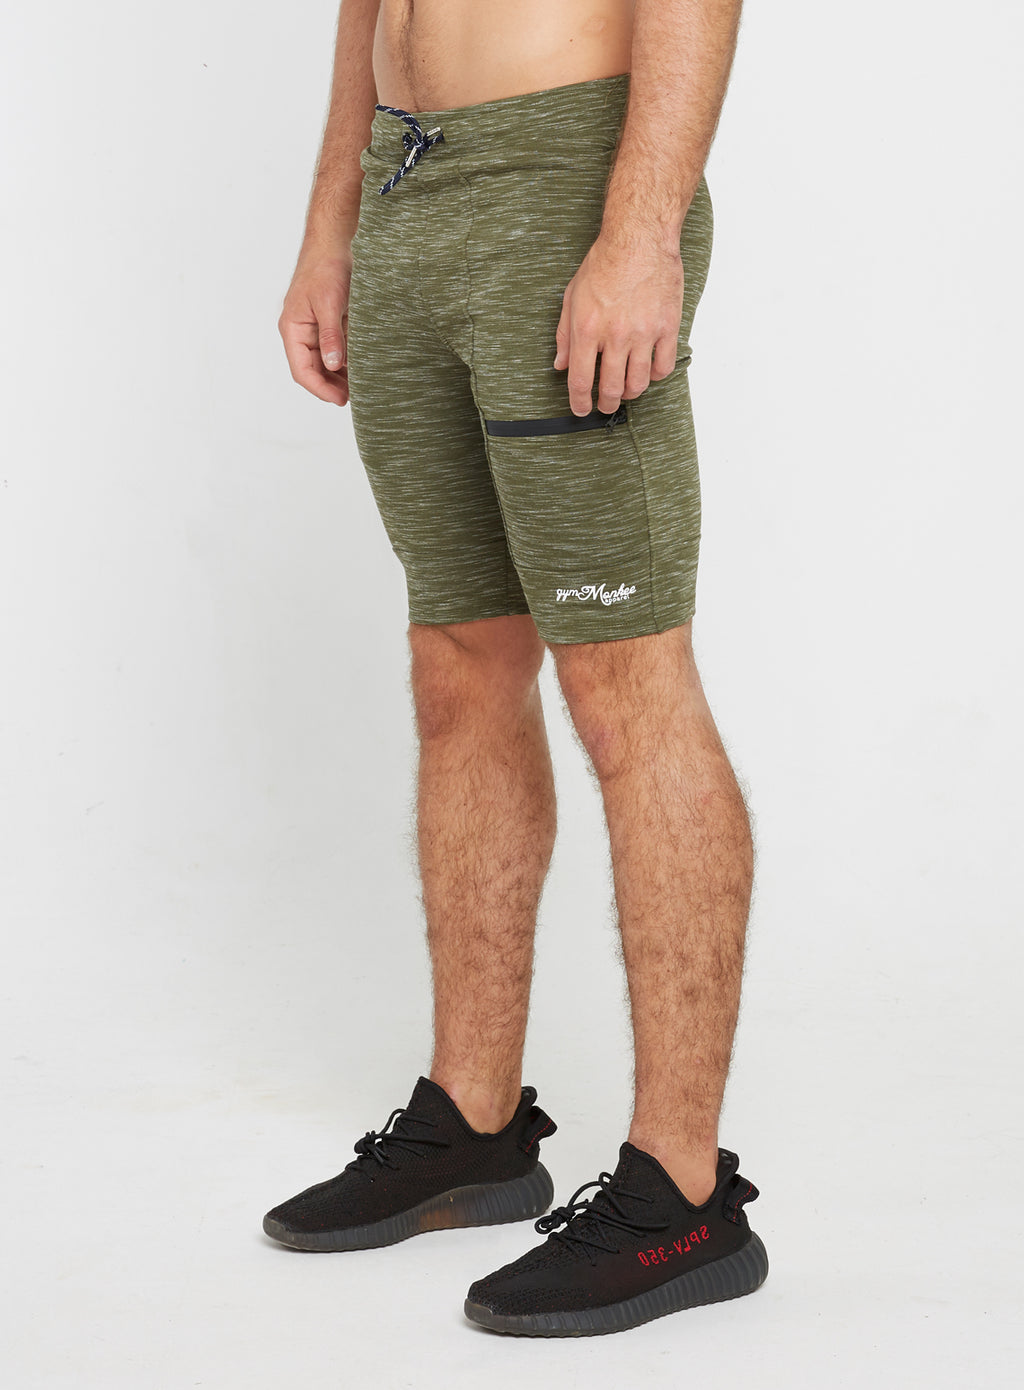 Gym Monkee - Olive Striped Shorts LEFT